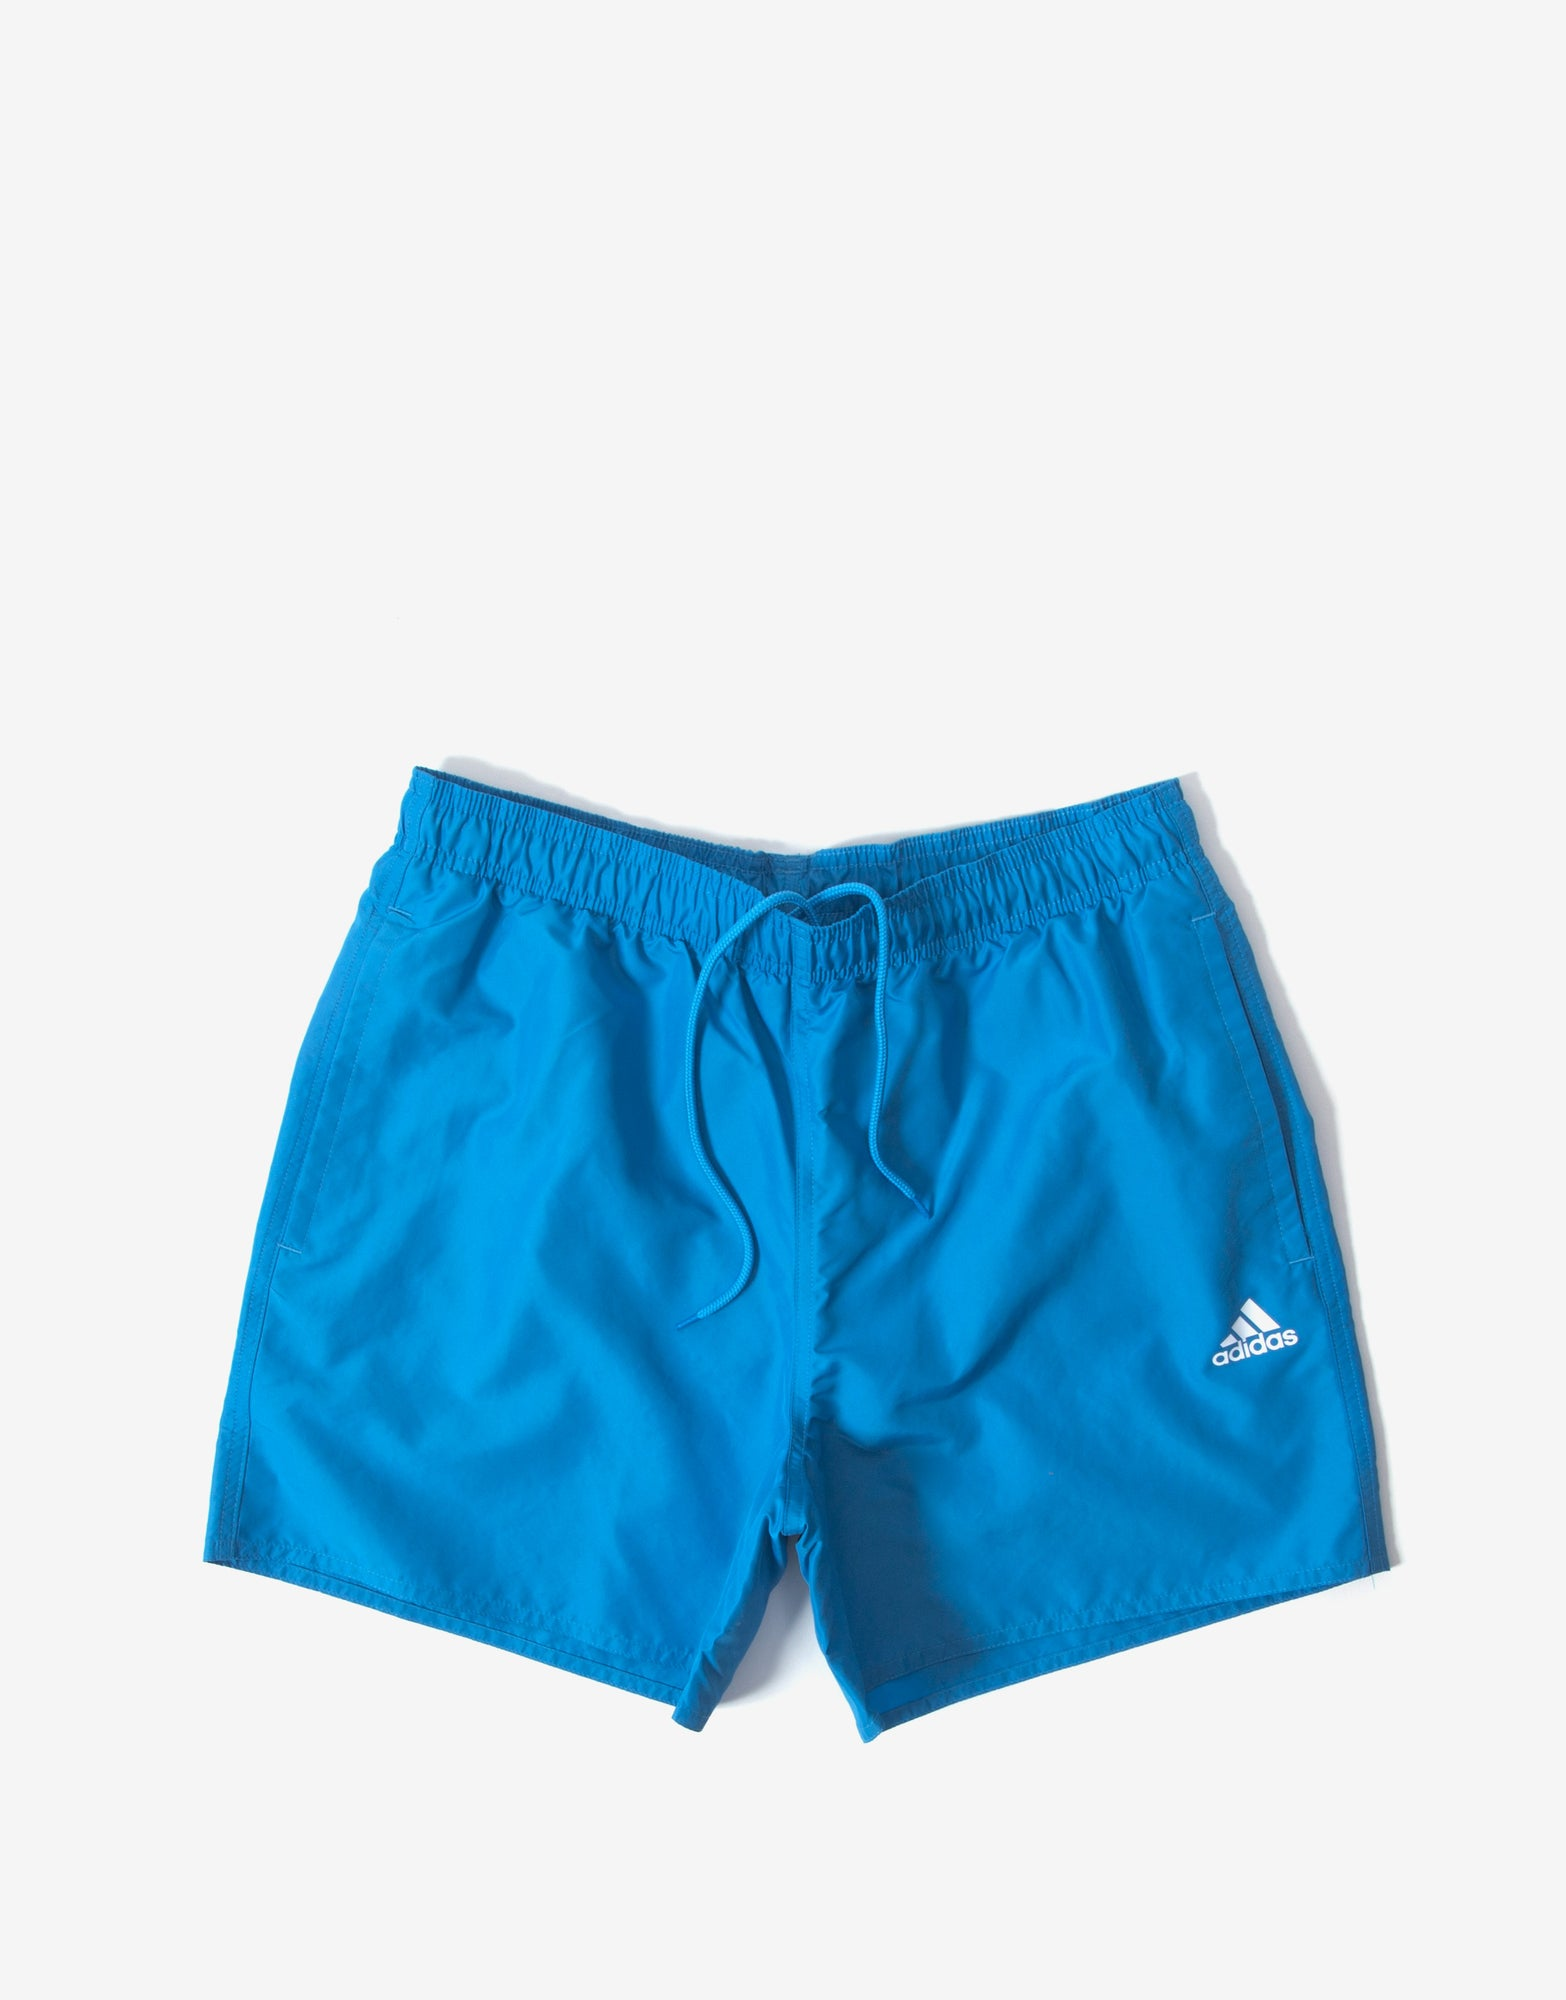 adidas CLX Solid Swim Shorts - Shock Ya